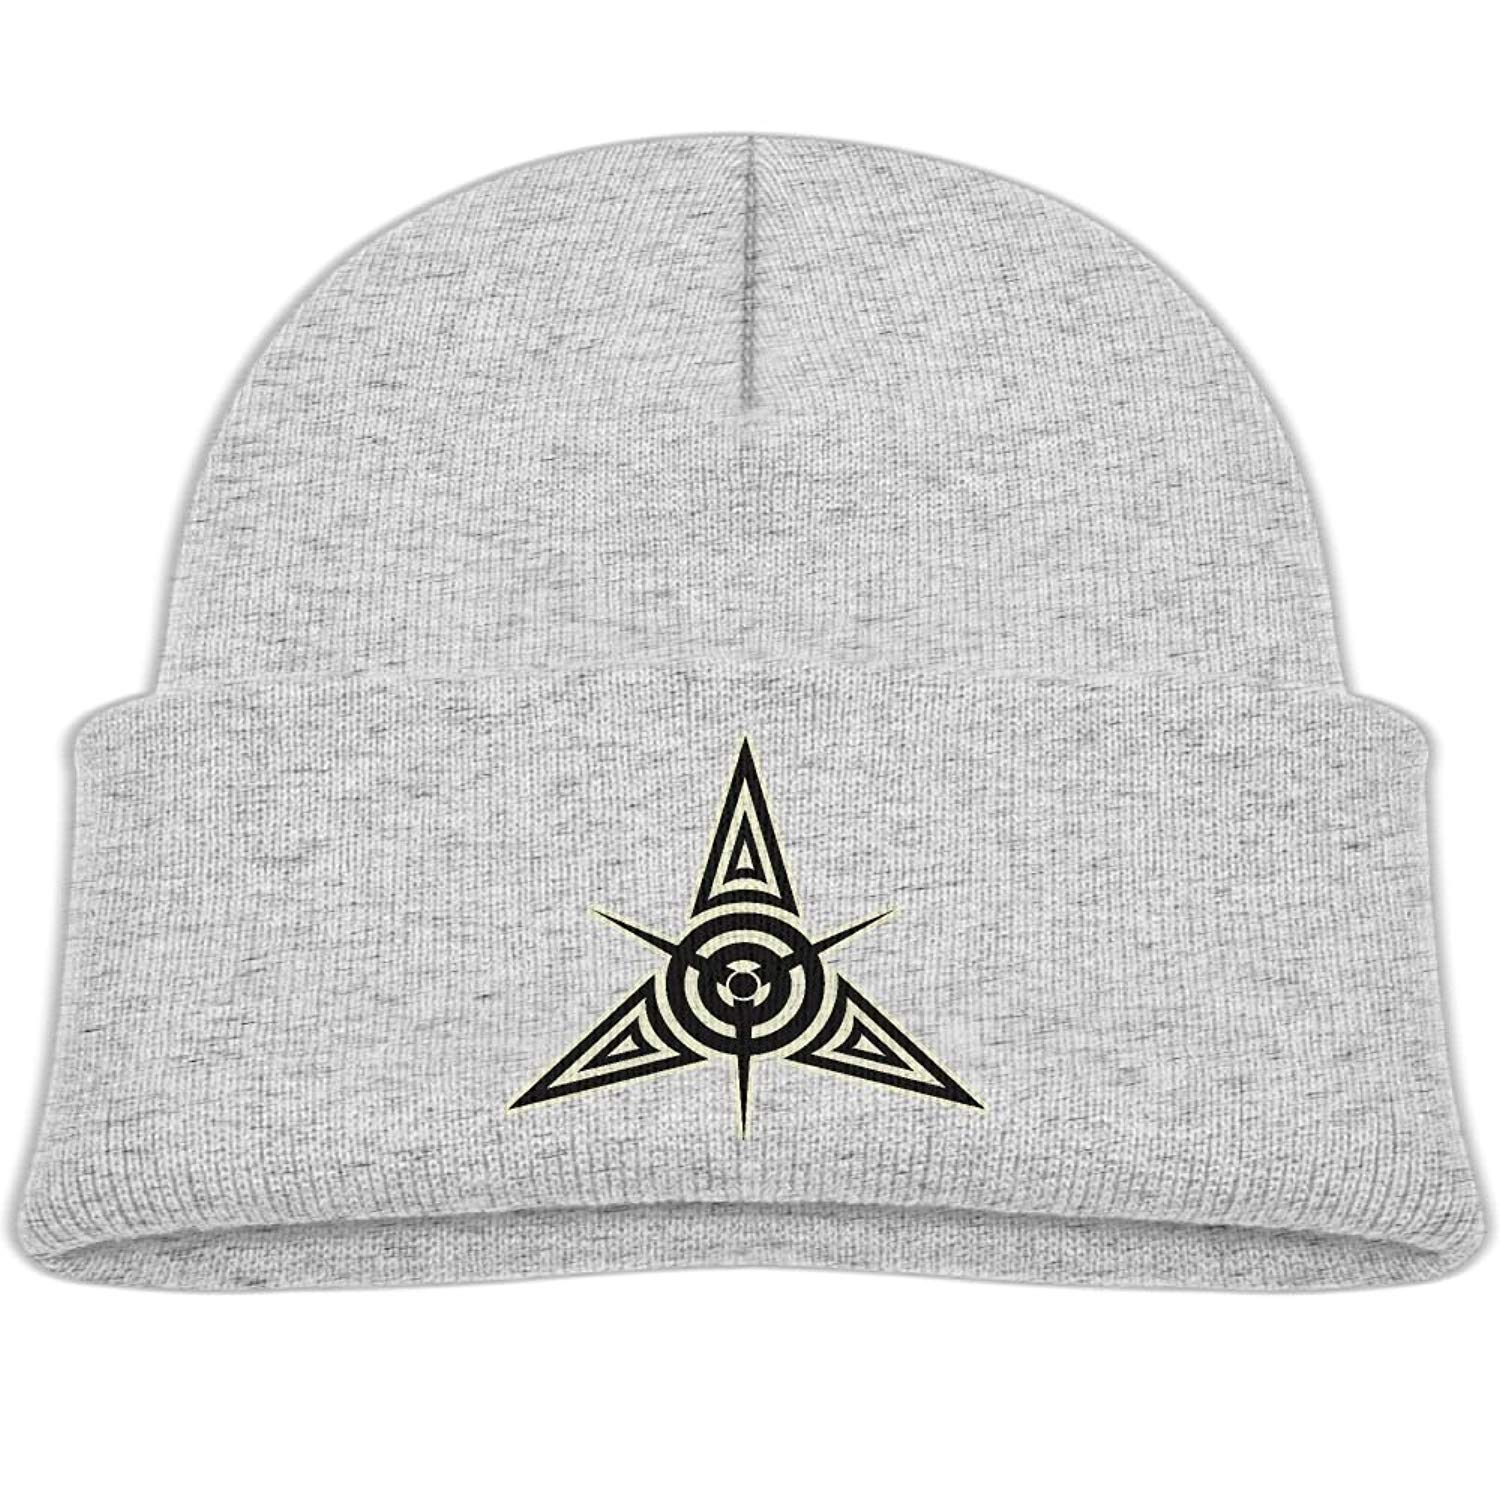 d357ce3d6dc Get Quotations · Raining Sunlight Kids Humor Airplane Pro-peller Tribal  Tattoo Casual Flexible Winter Knit Hats